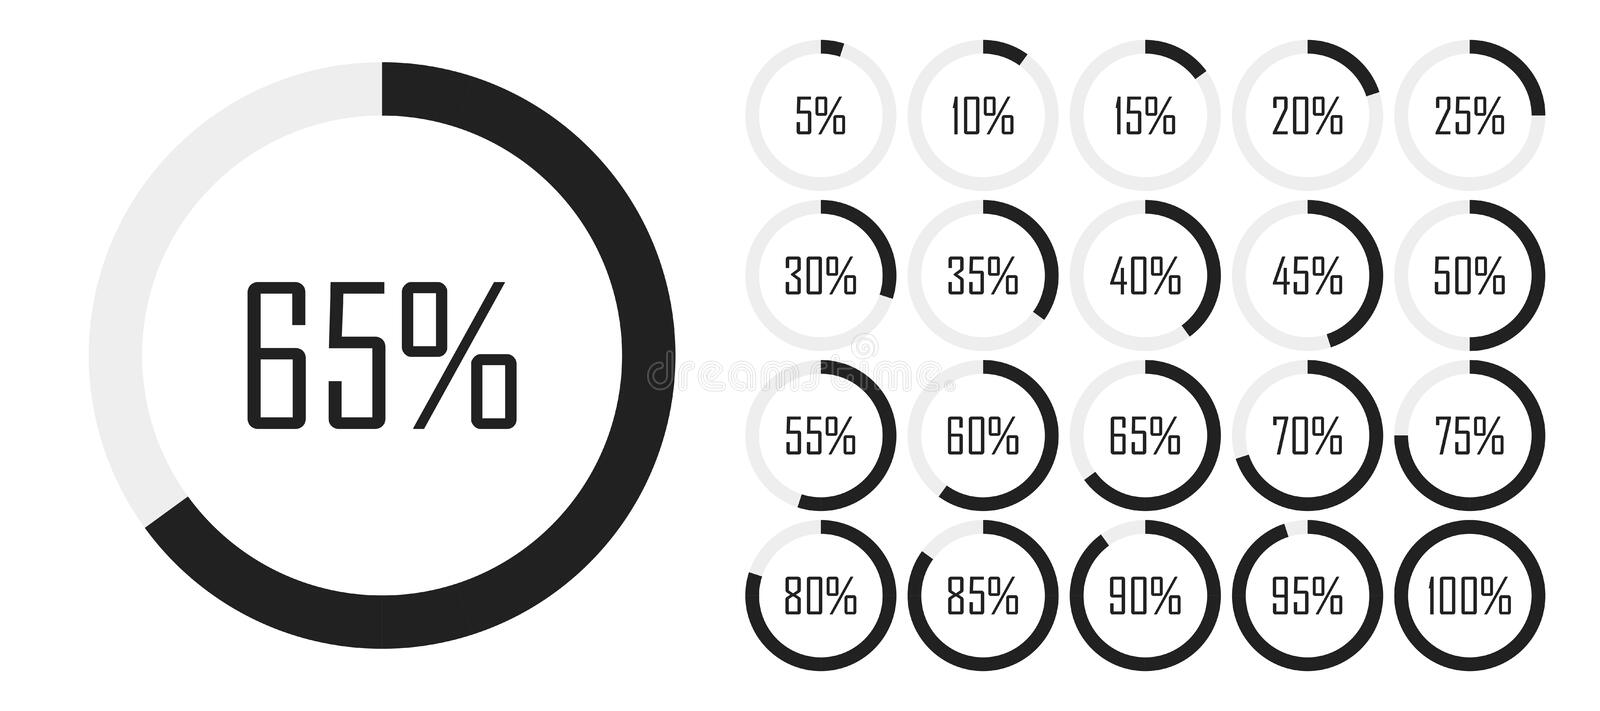 Set of circle percentage diagrams from 0 to 100 for infographics, lignt, 5 10 15 20 25 30 35 40 45 50 55 60 65 70 75 80 85 90 95 vector illustration